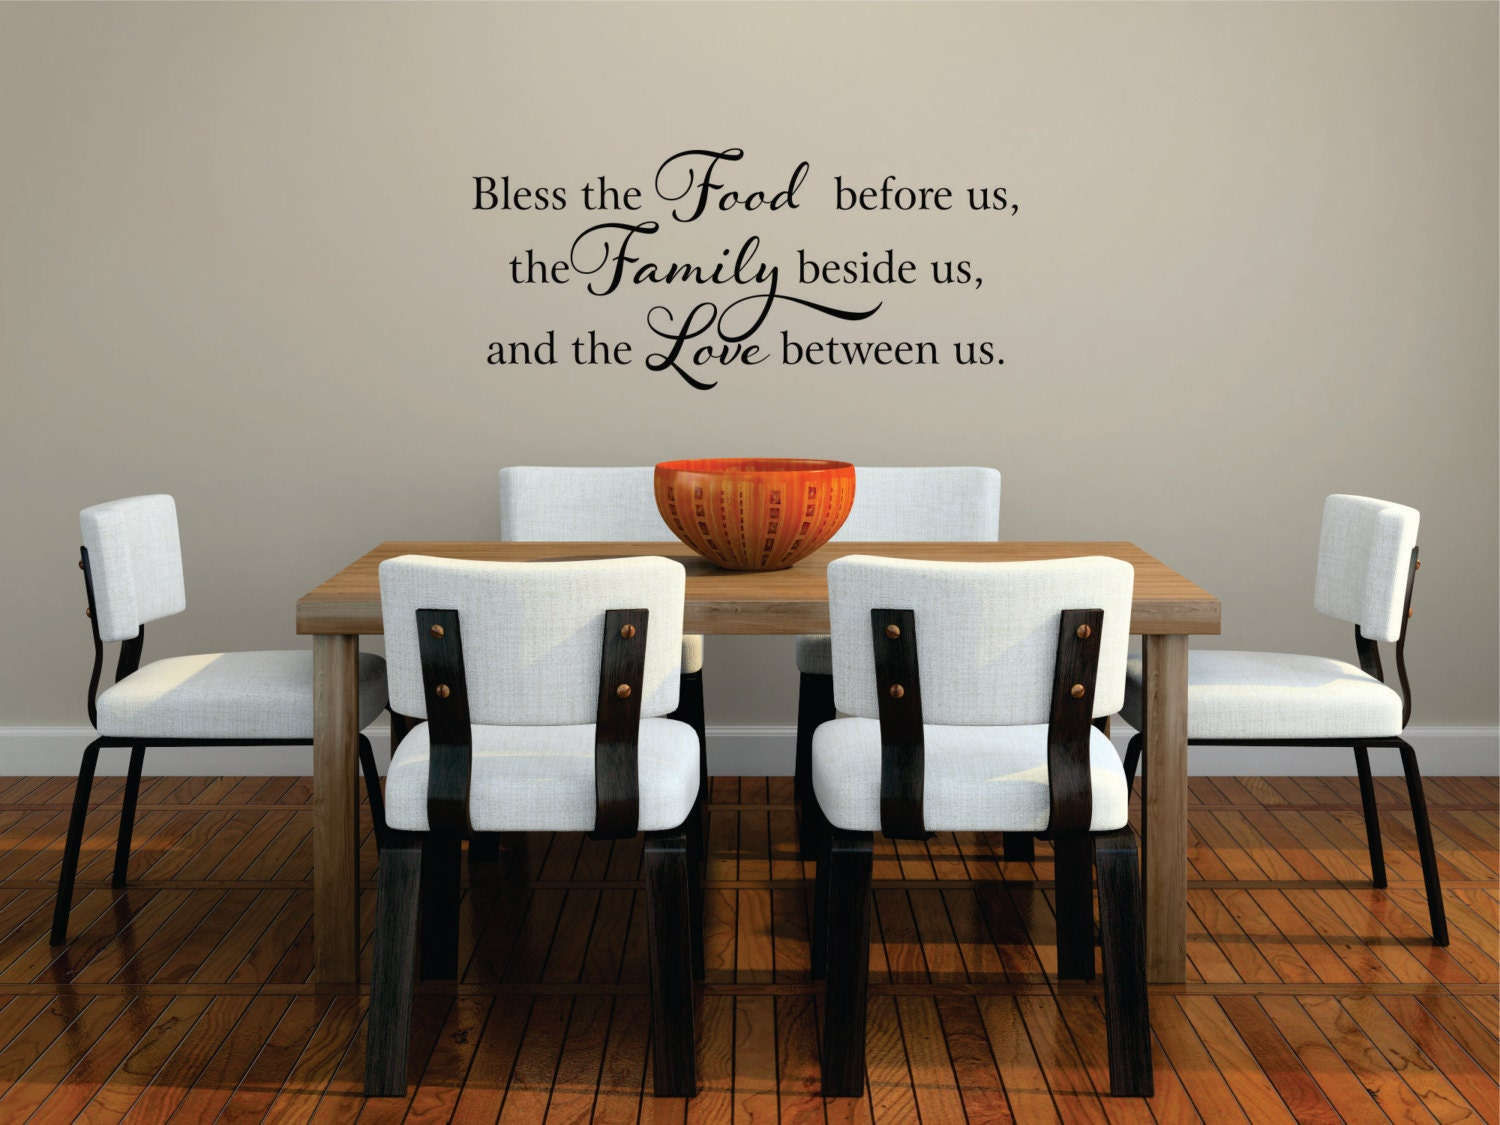 bless the food before us wall decal kitchen wall art food